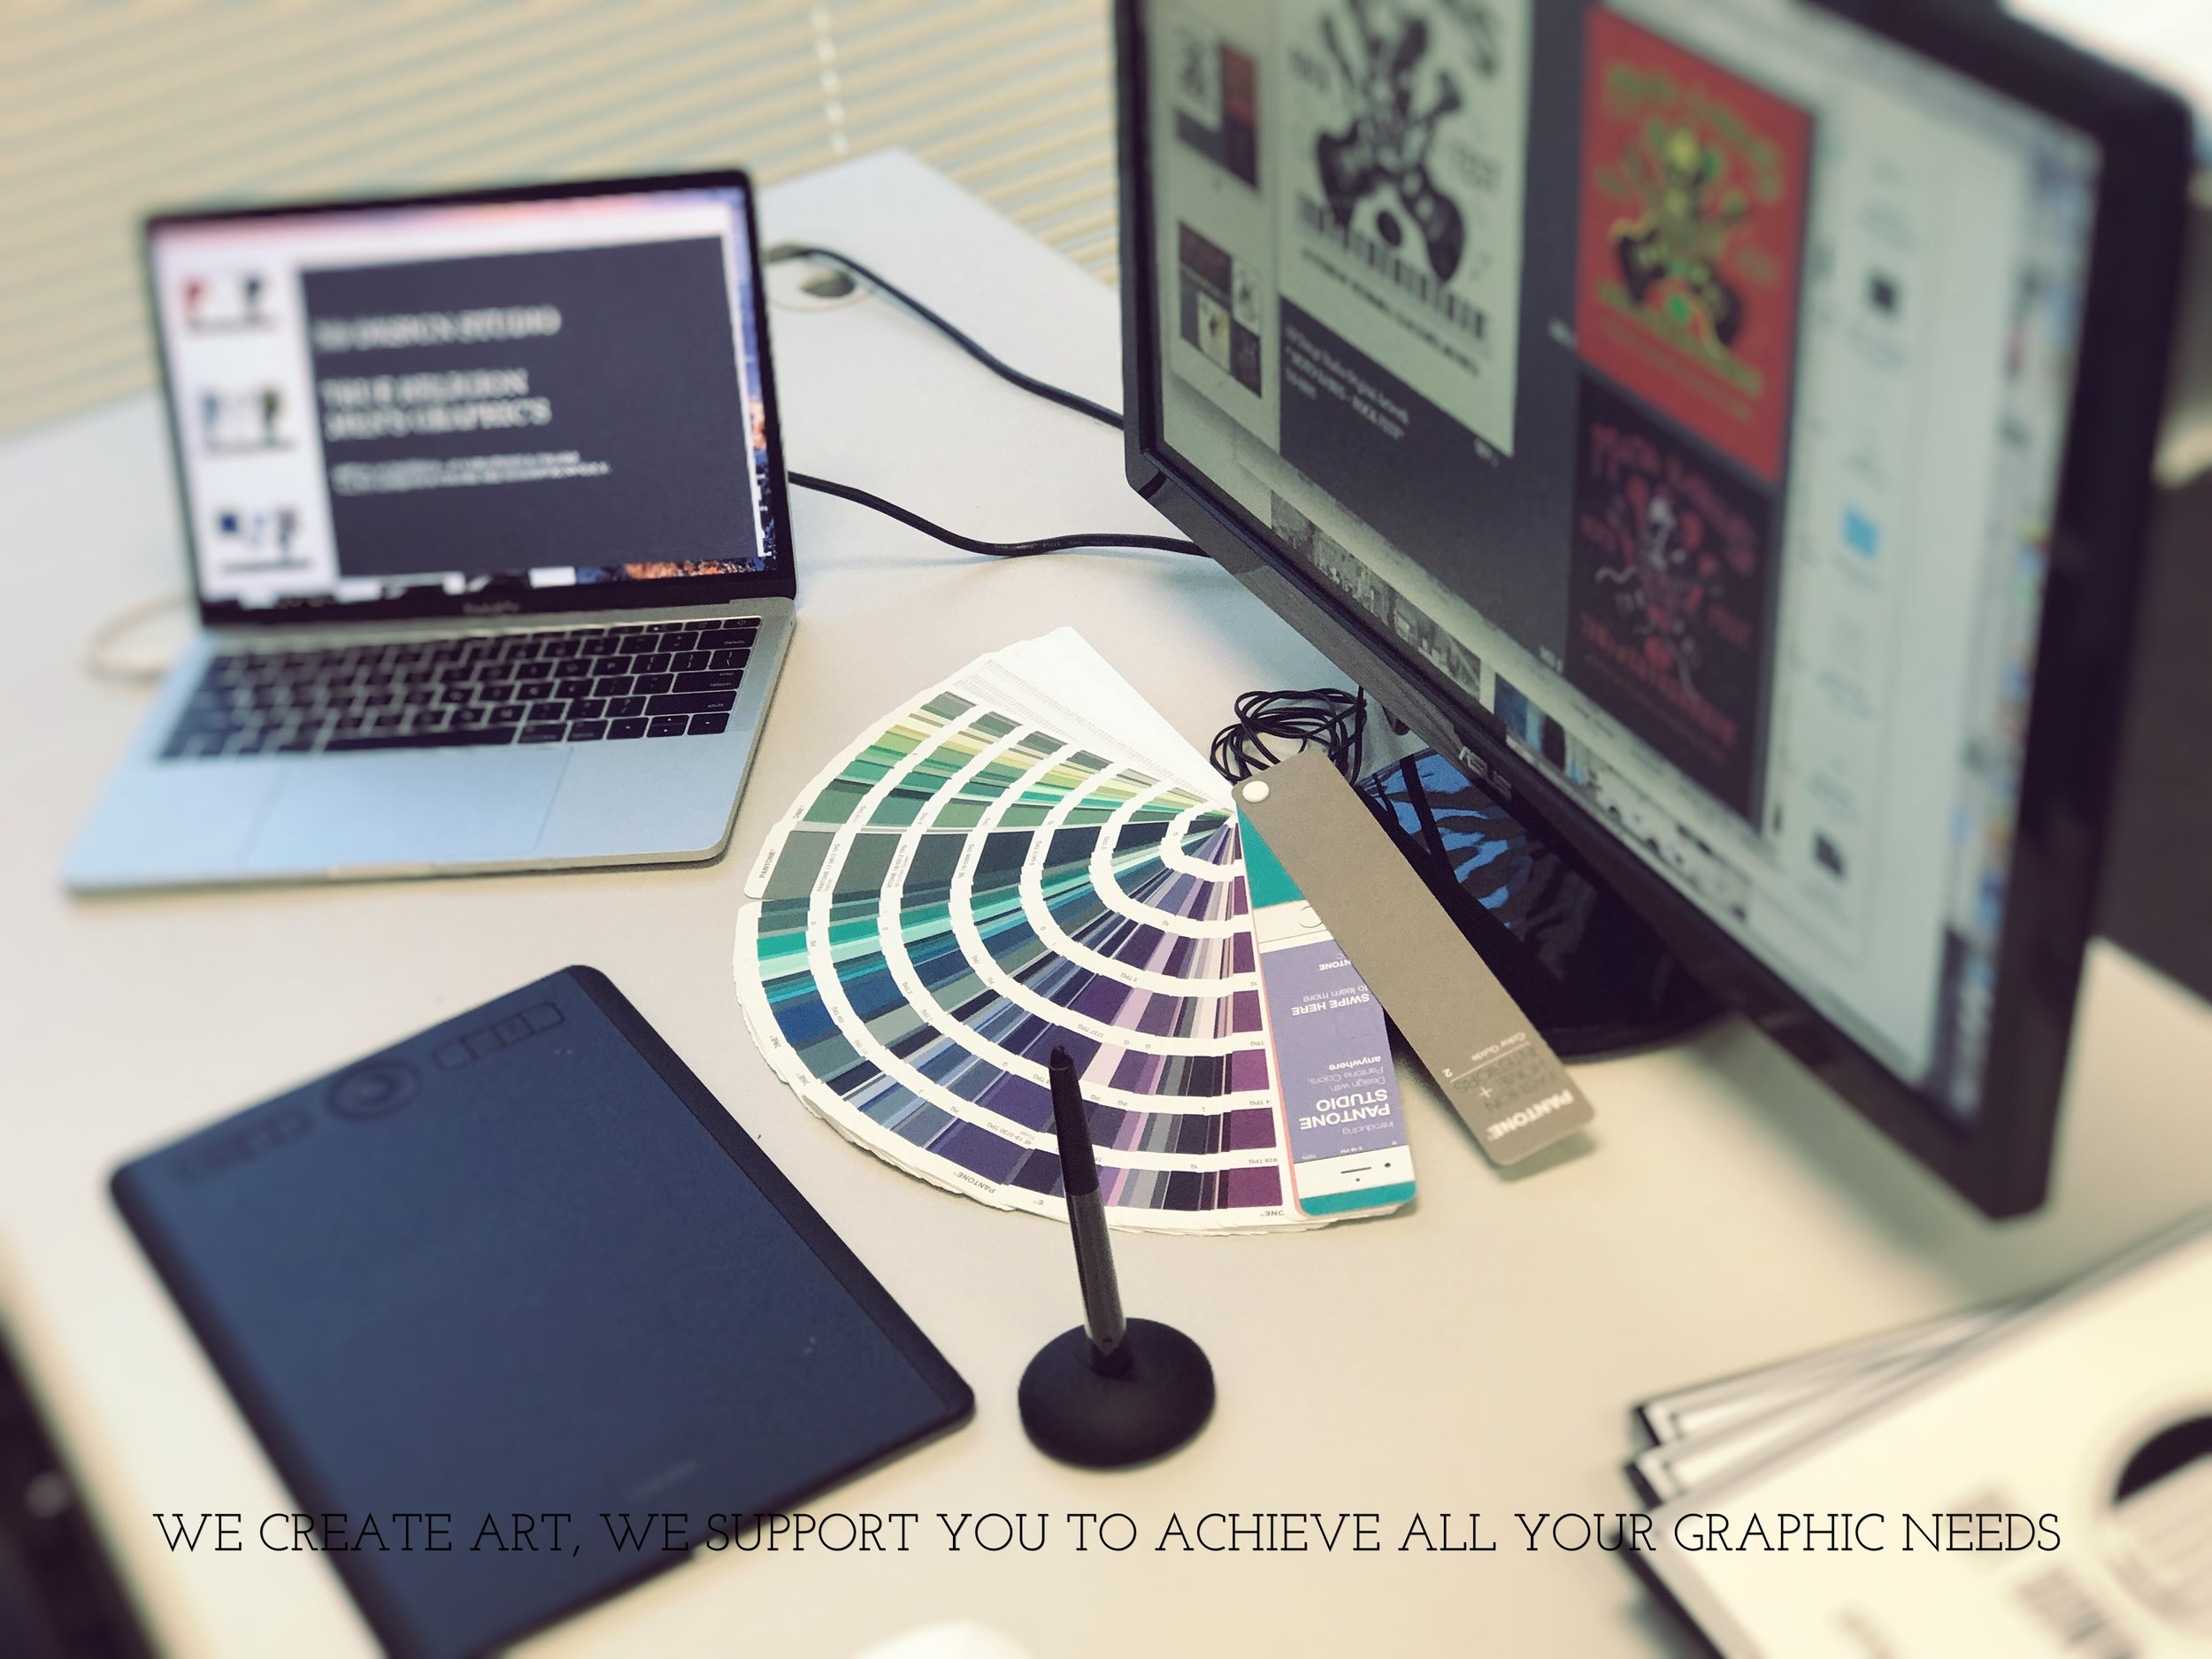 WE CREATE ART AND ALSO SUPPORT YOU TO ACHIEVE ALL YOUR DESIGN AND GRAPHIC NEEDS.